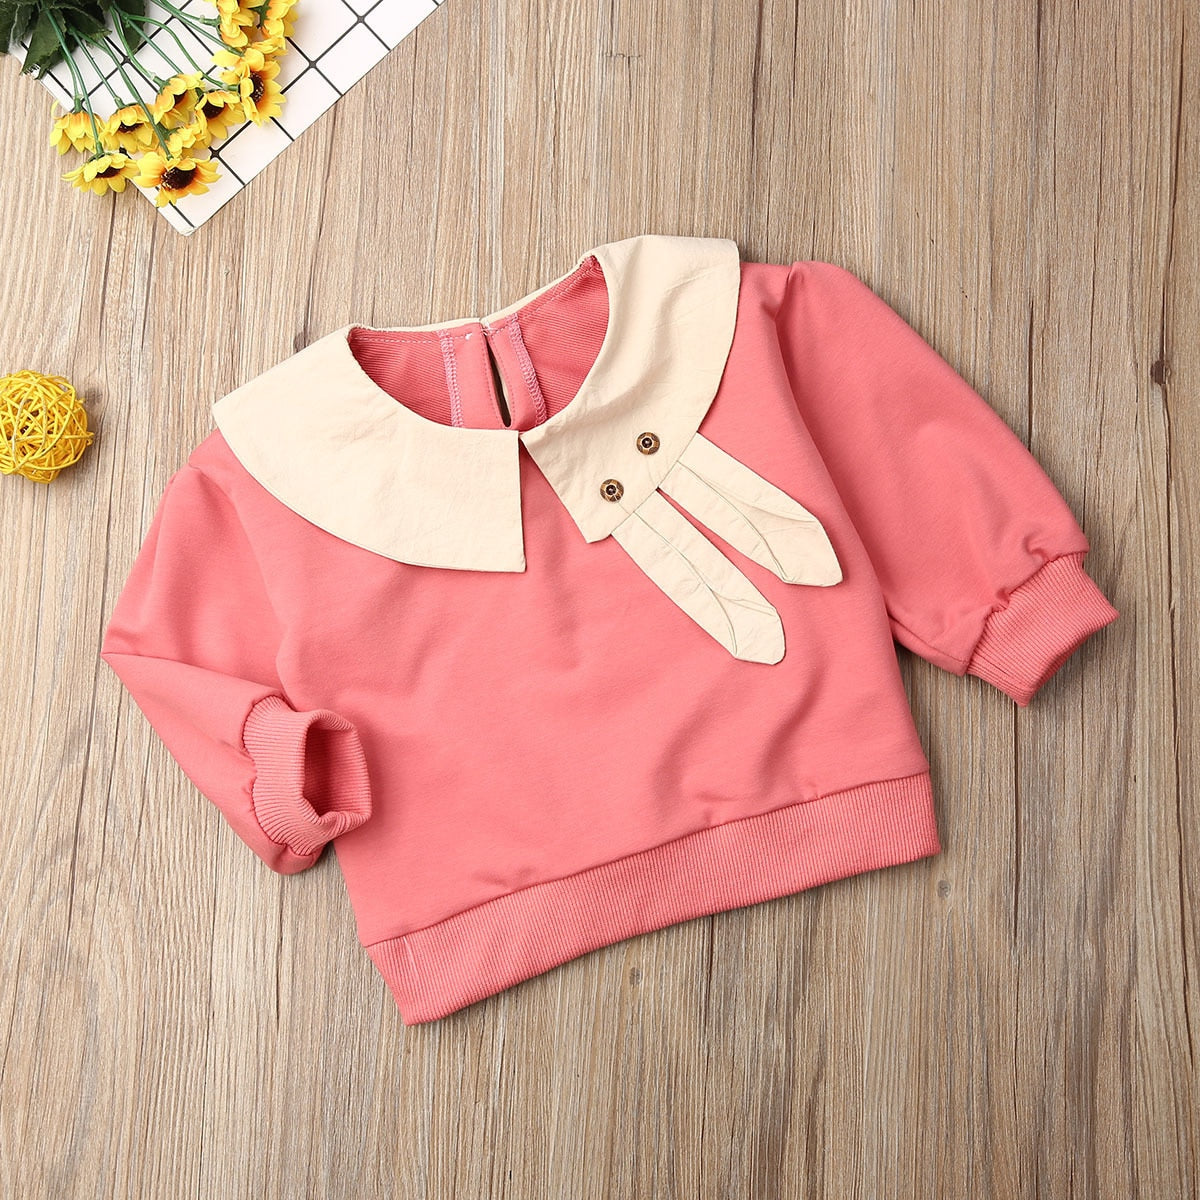 Cotton Jumper : 0-3 years